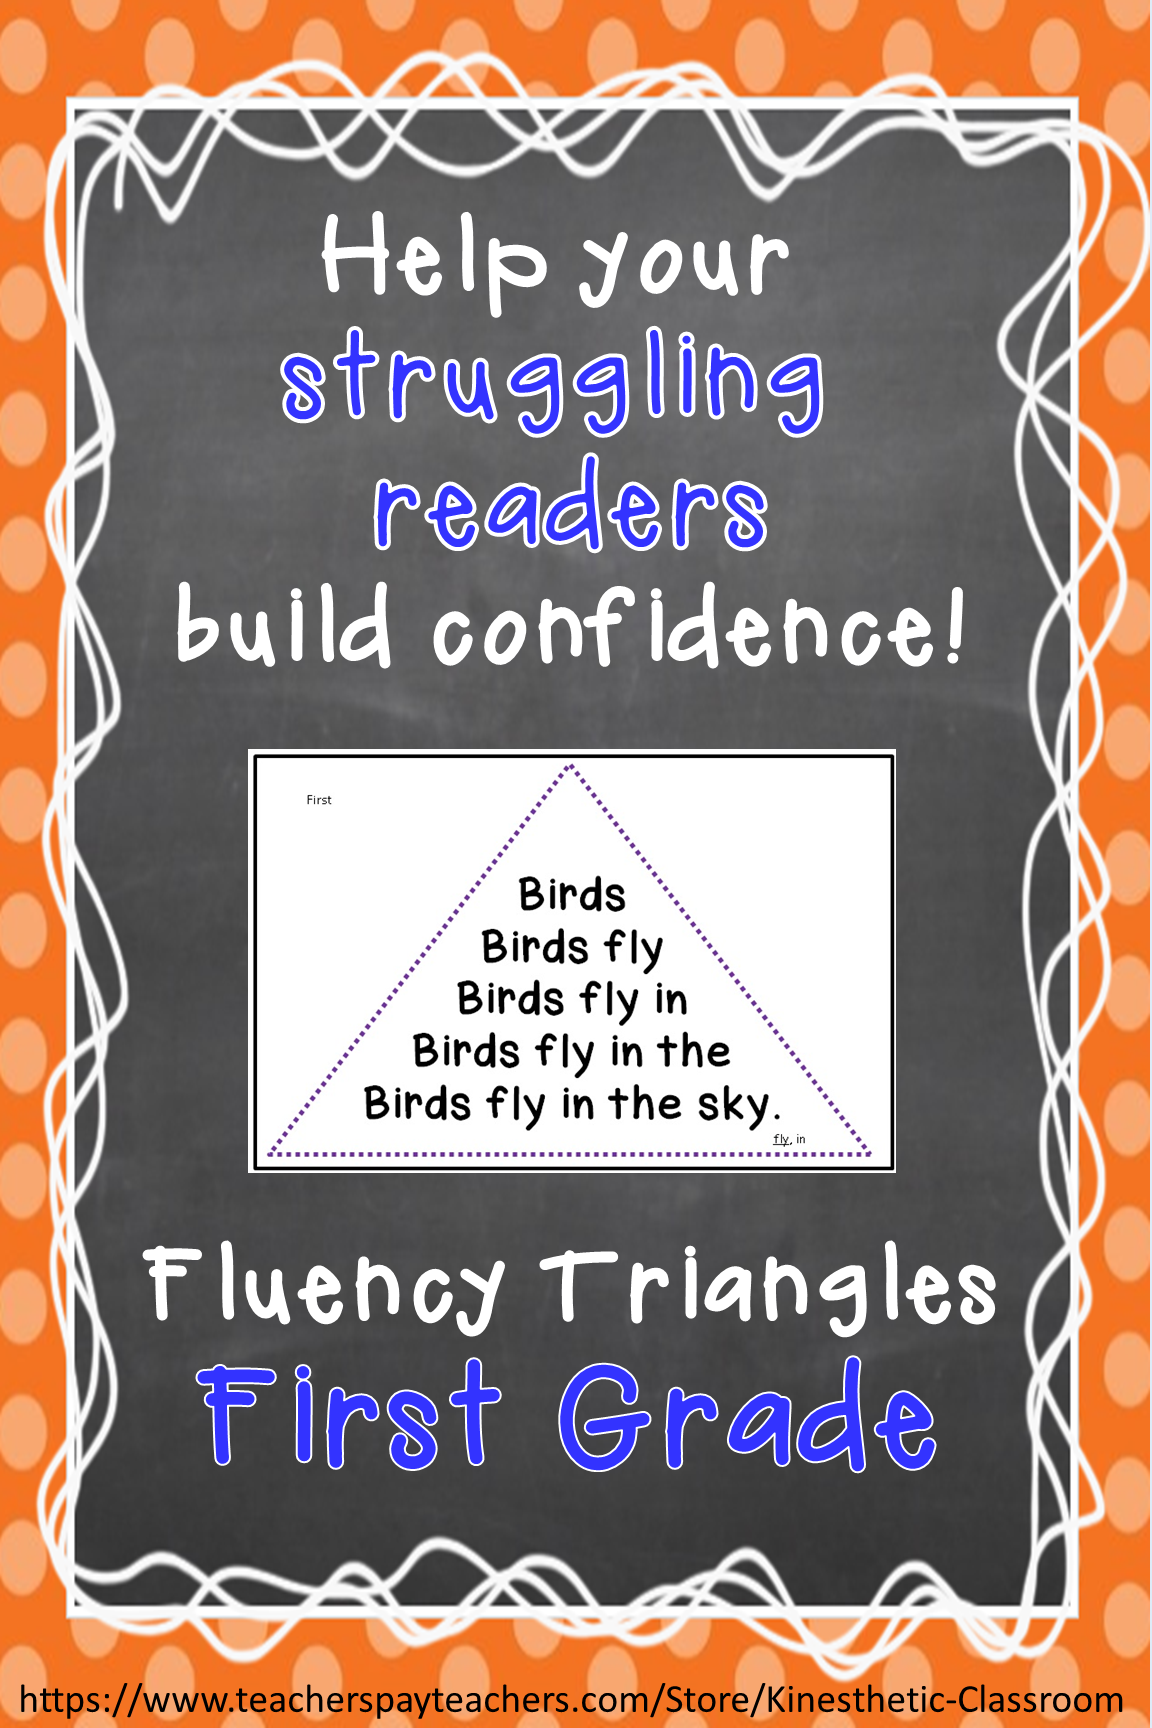 Reading Fluency Activity Fluency Triangles For First